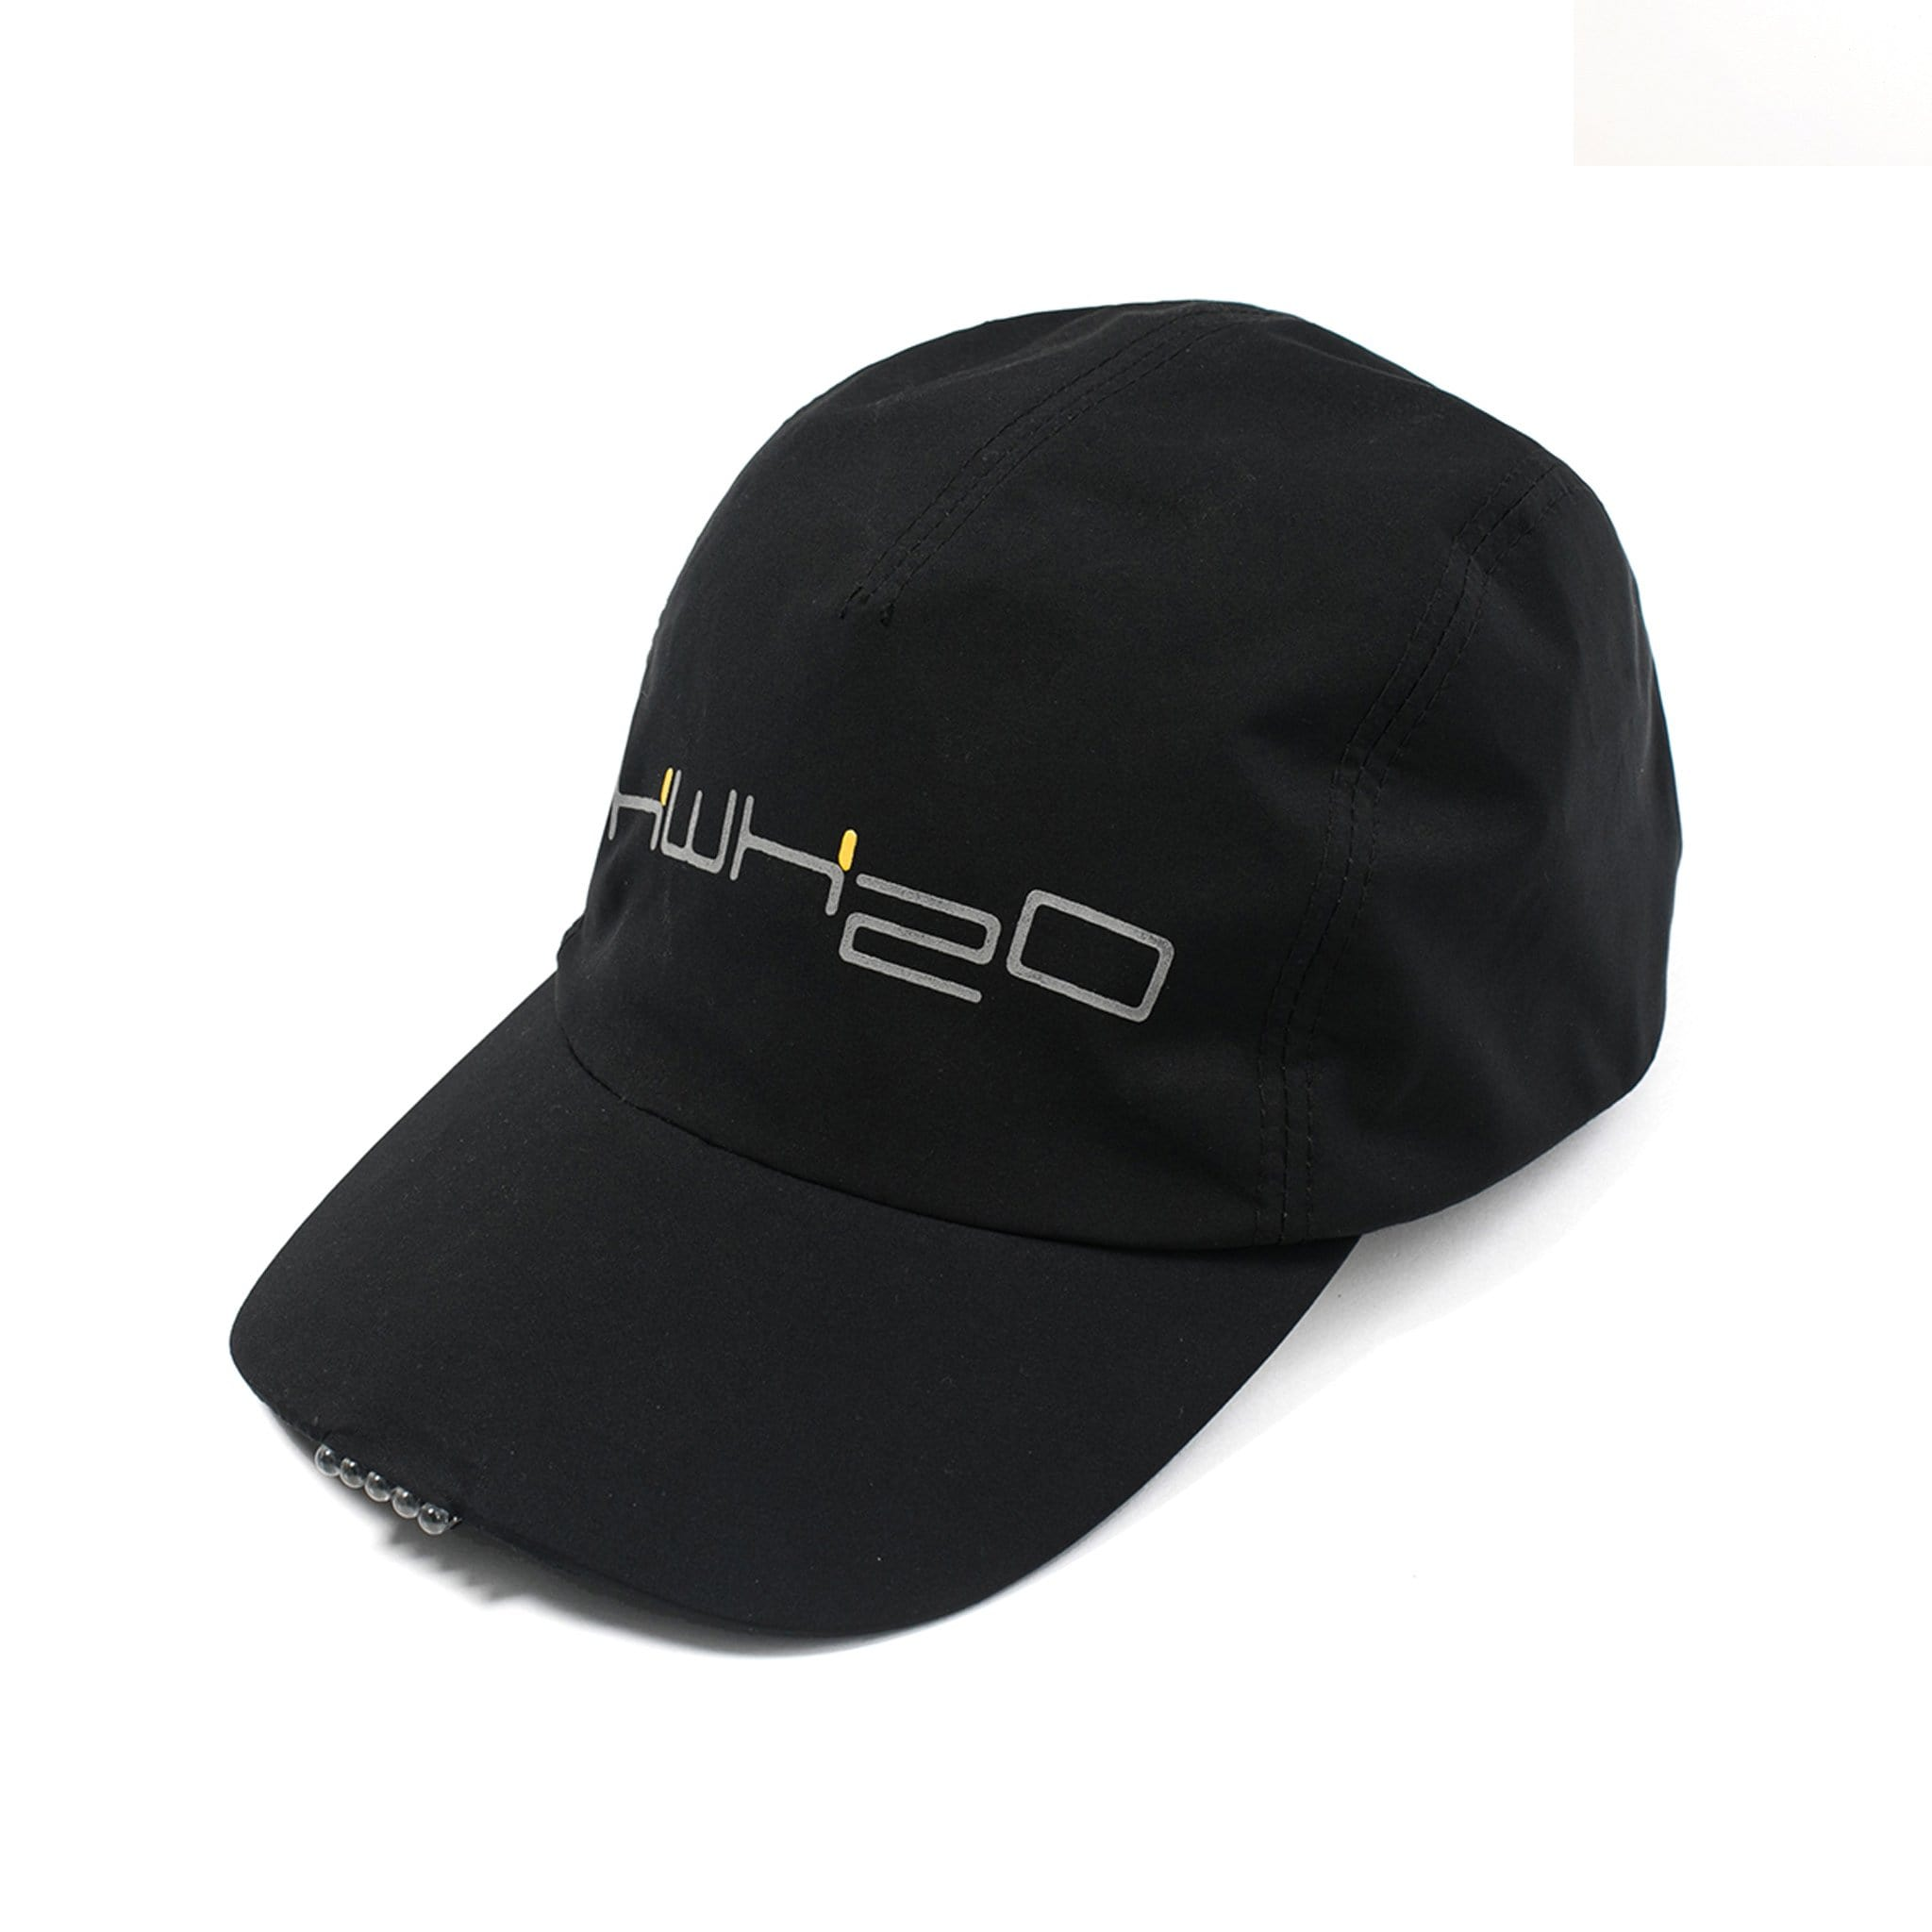 Horseware H2O Waterproof LED Baseball Cap CHHBL1-K000-OS